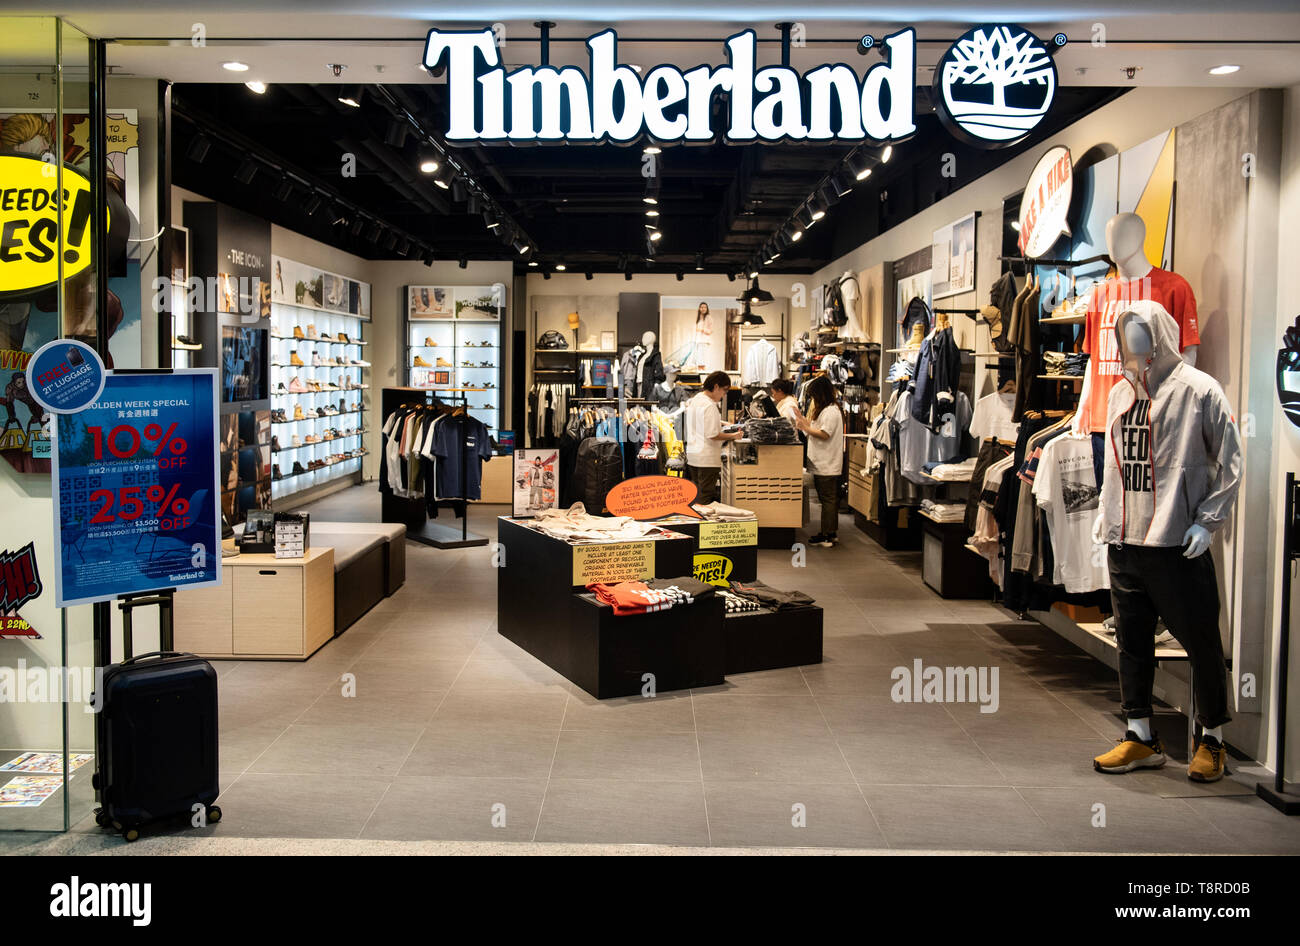 American clothing and footwear company brand Timberland seen